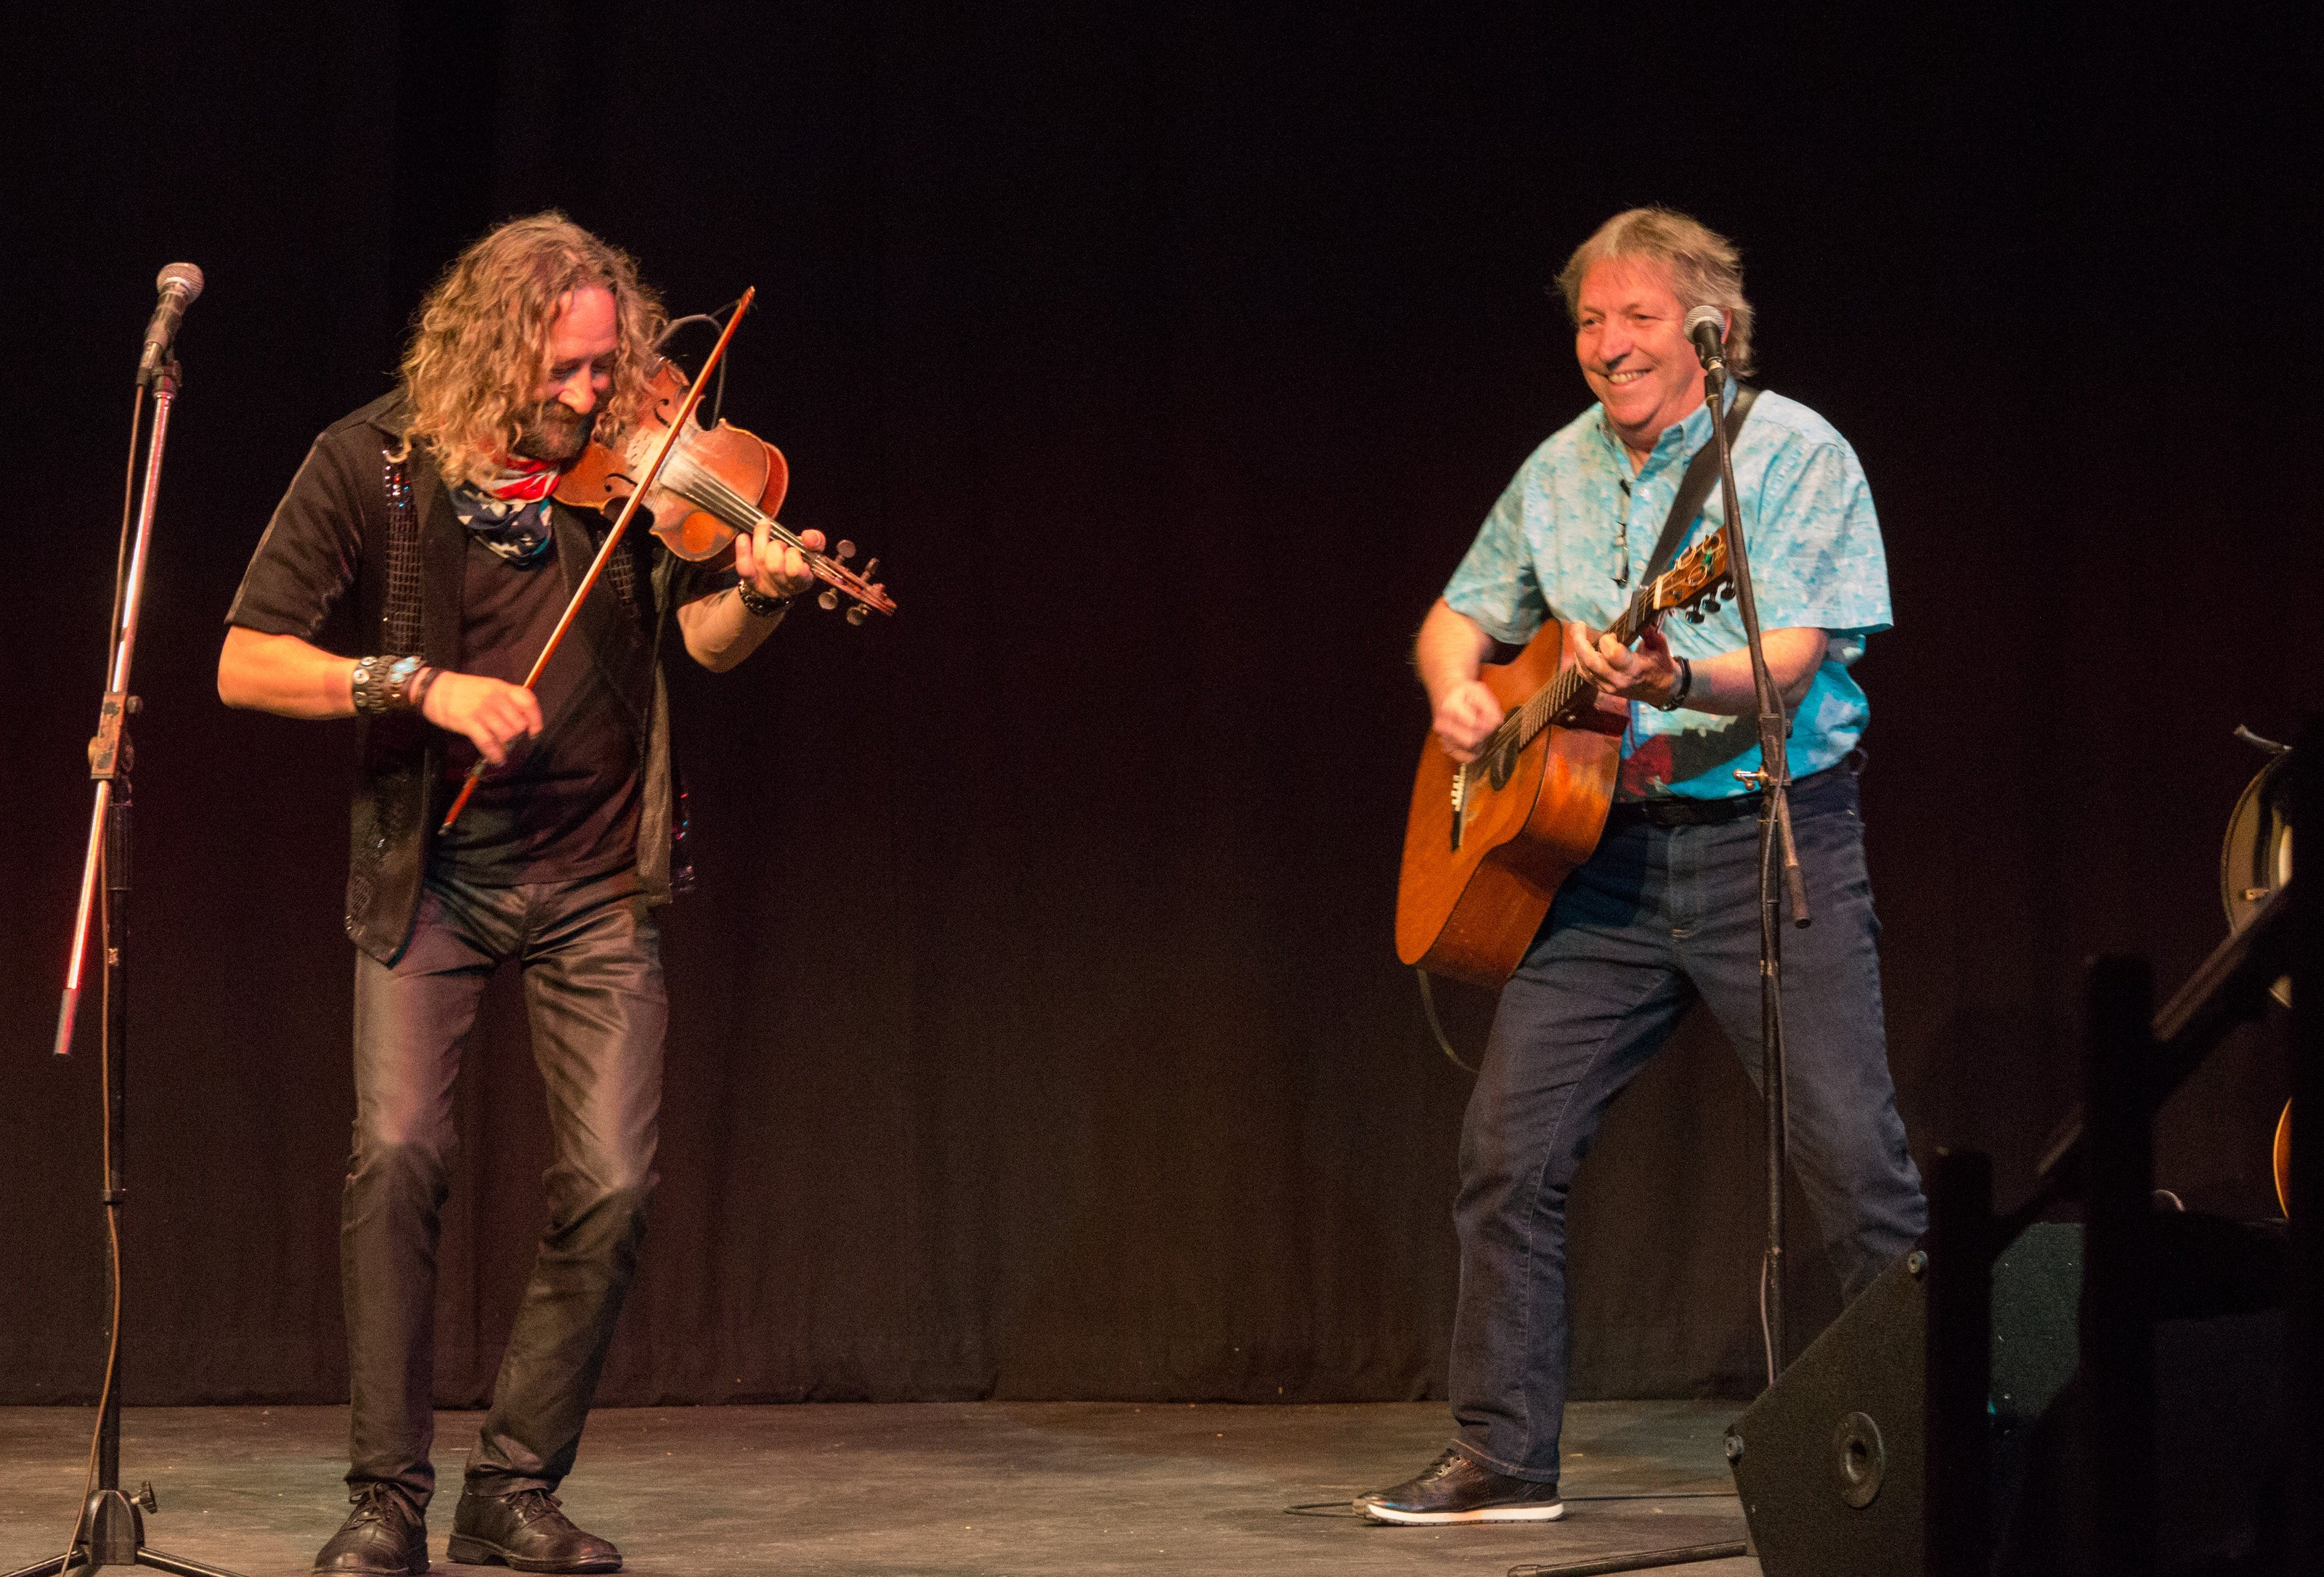 Richard Wood and Gordon Belsher, from Prince Edward Island, are shown during their second performance at EAC.